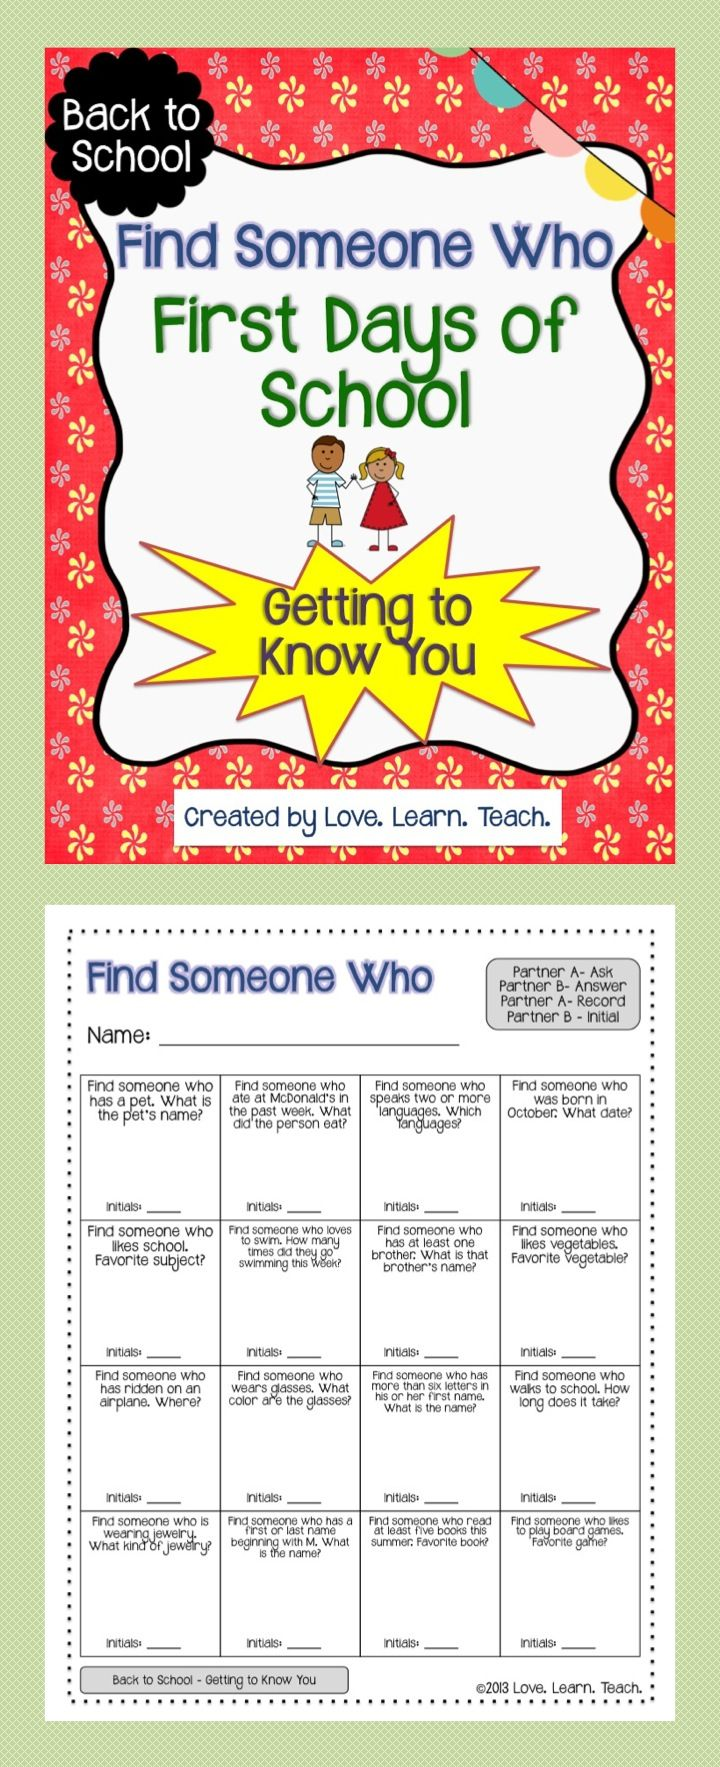 back to school icebreakers Back to school ideas & icebreakers for back to school time for back to school if you are looking for ideas and icebreakers for the first day, you are definitely in the right place.